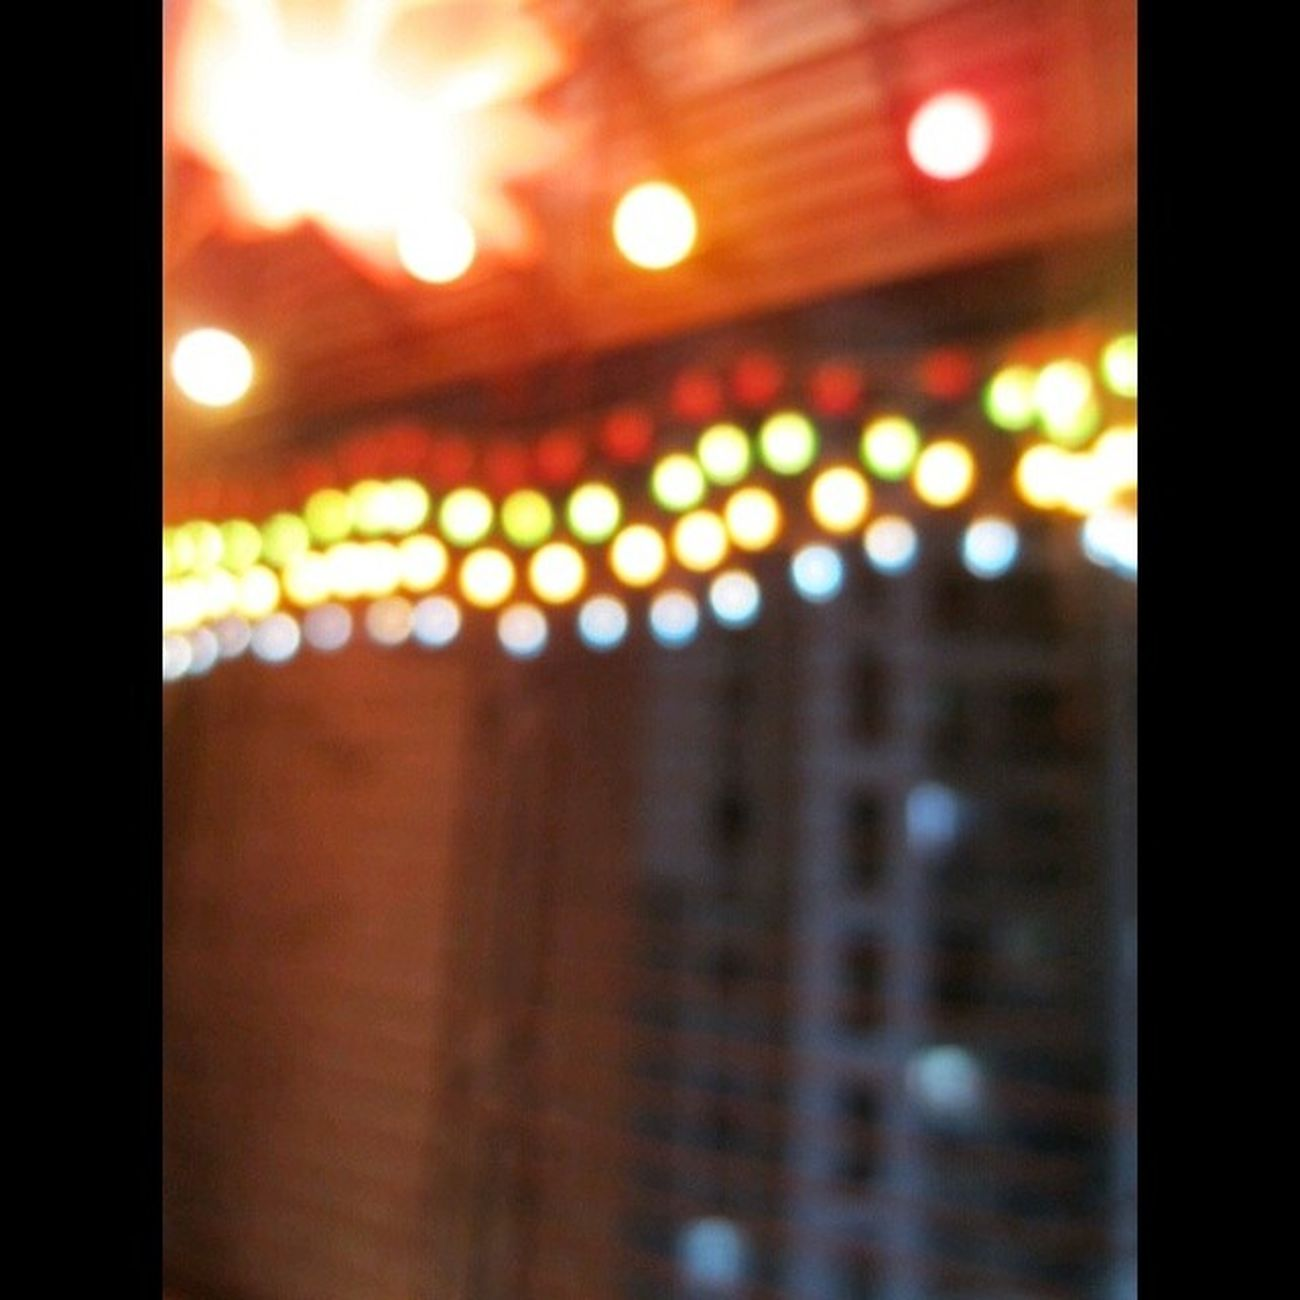 Trying bokeh on digicam